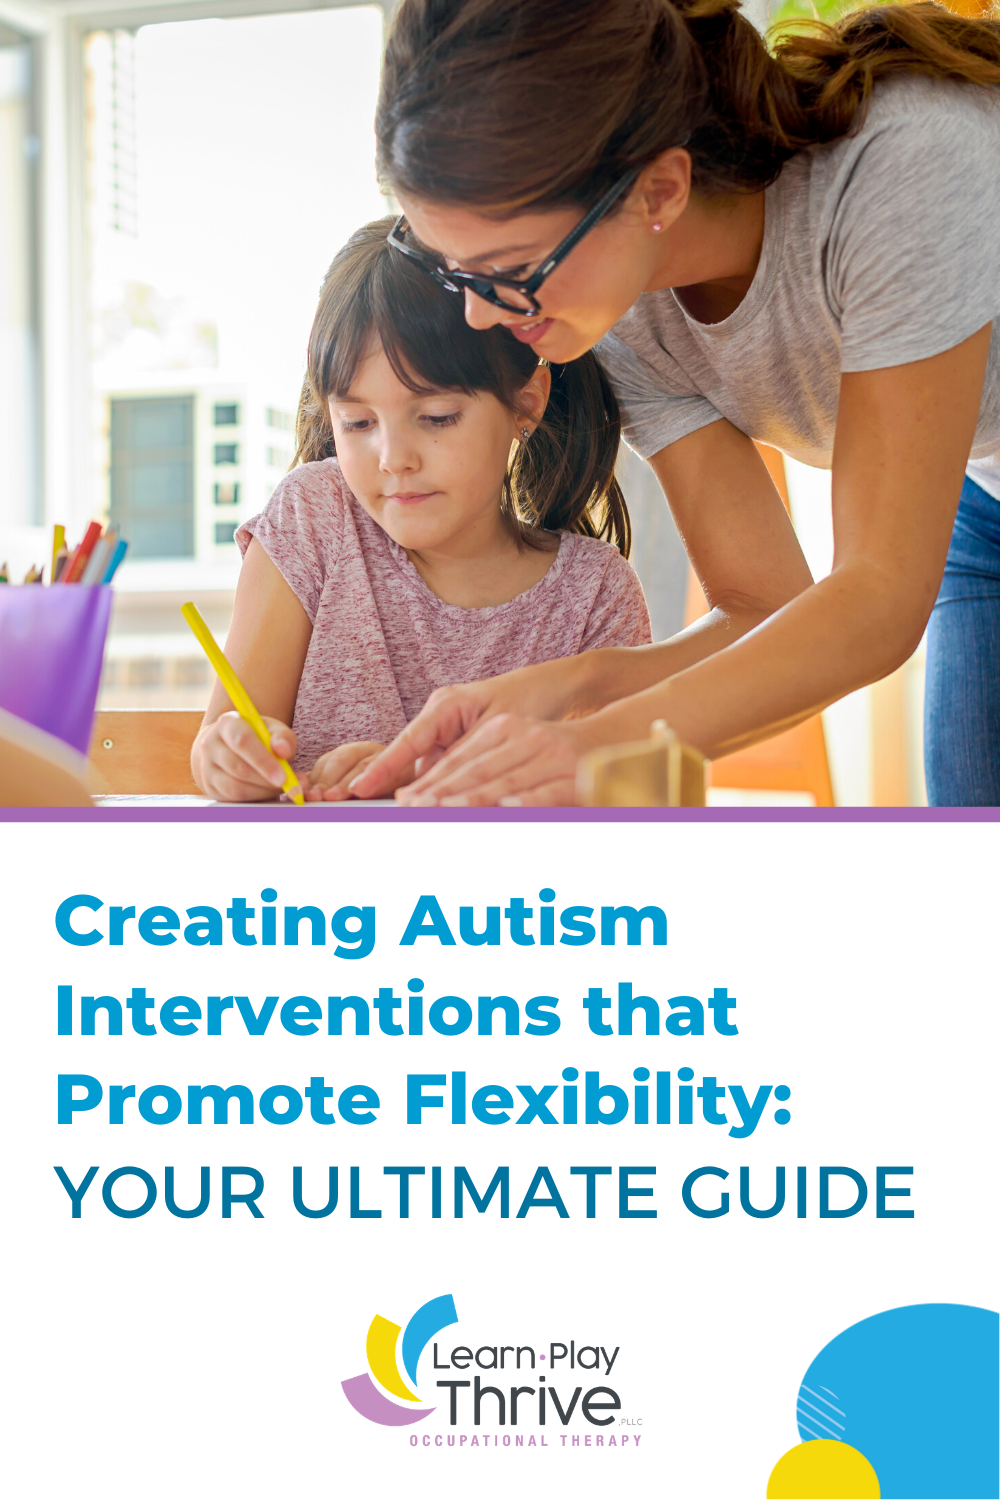 Autism and flexibility